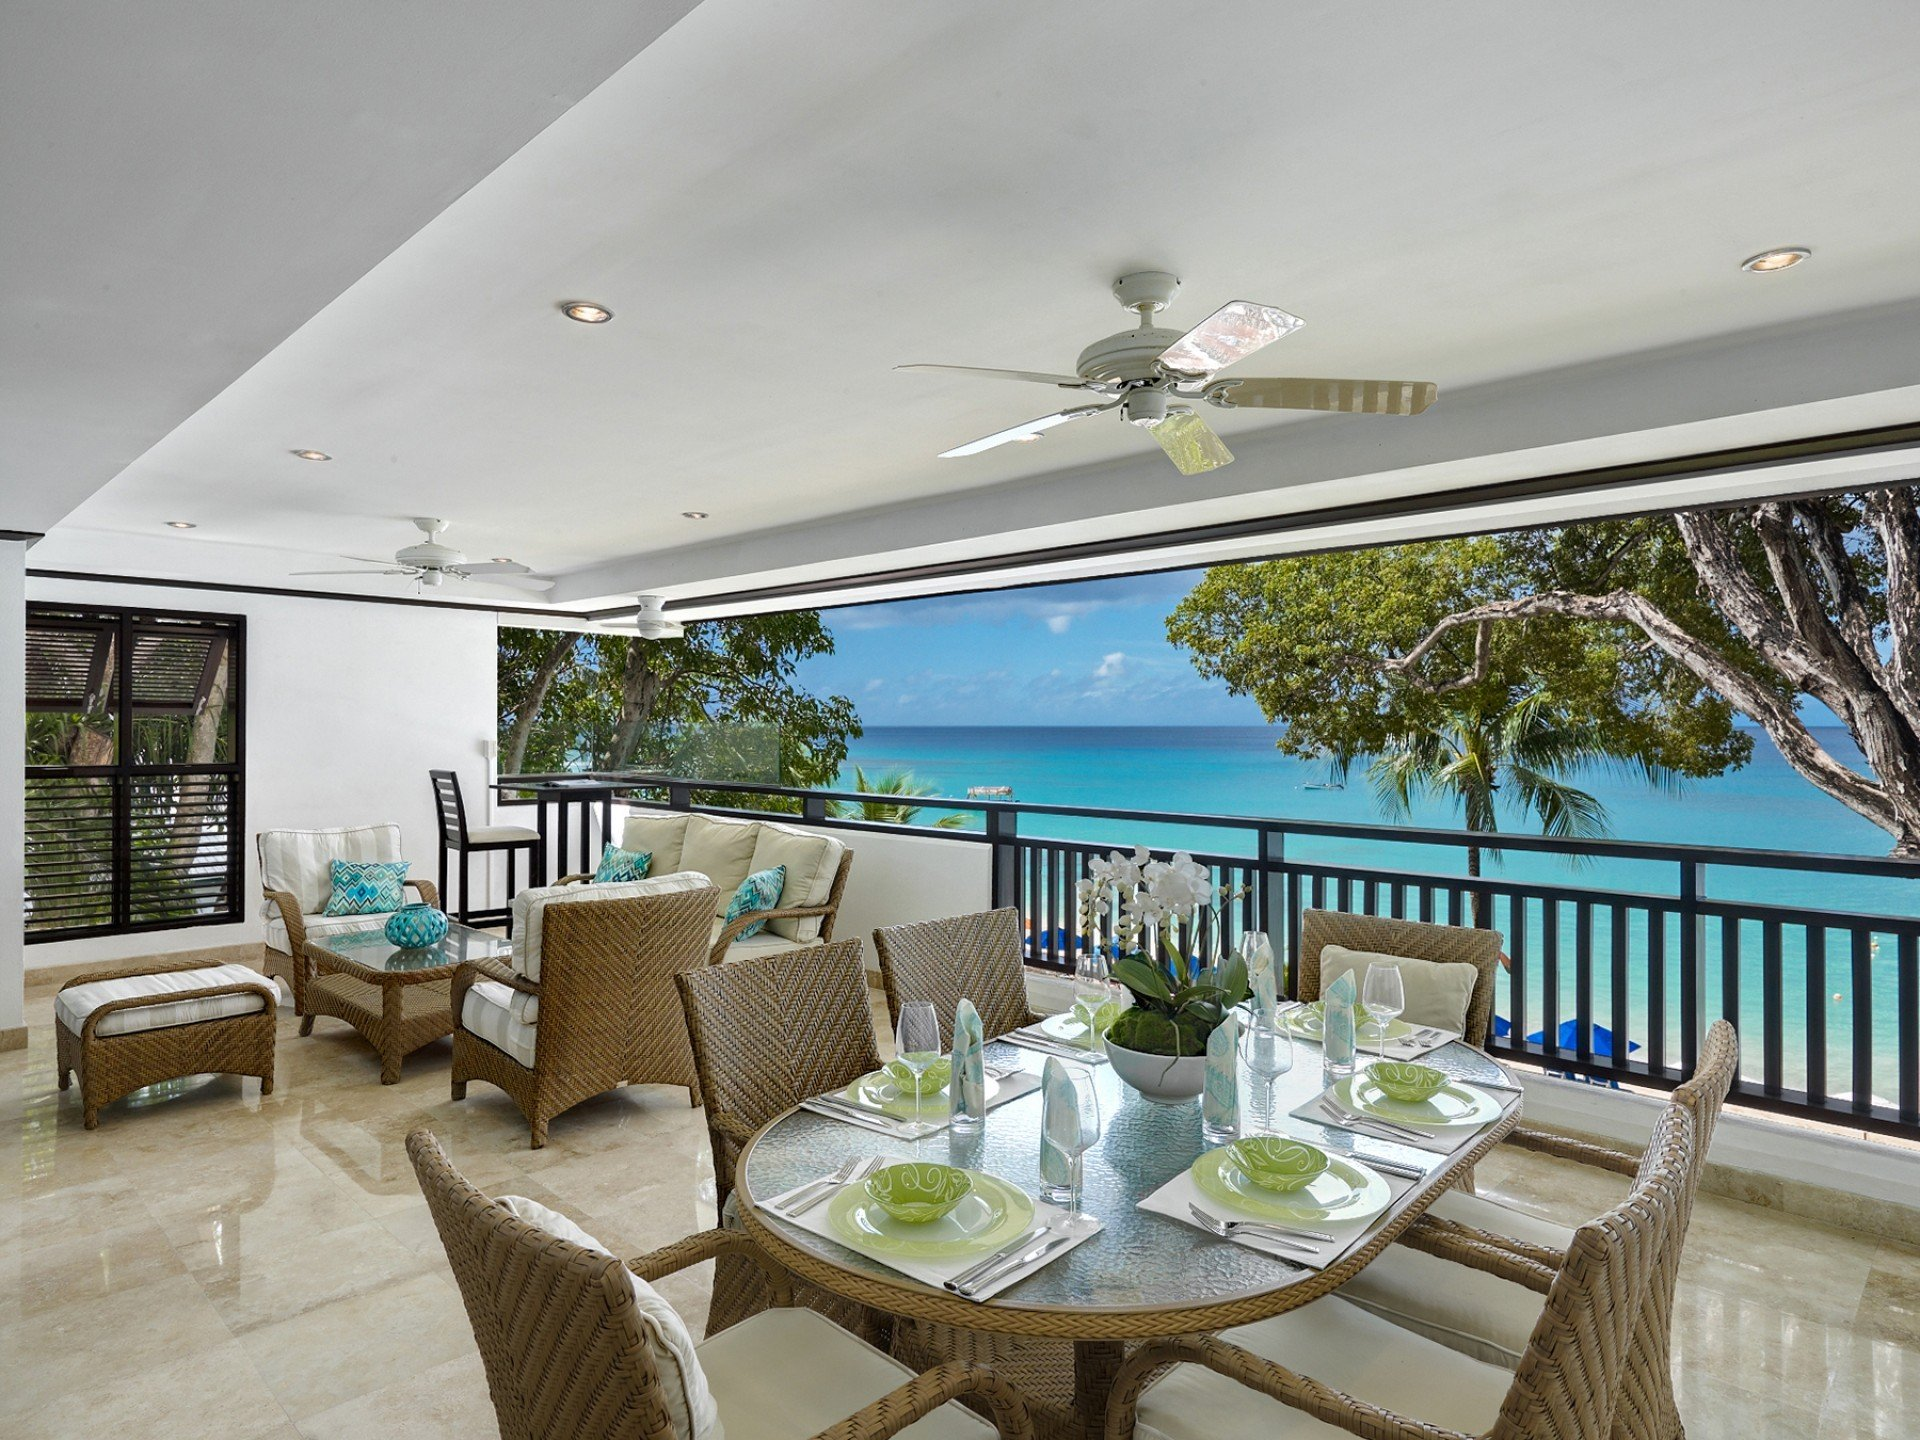 Coral Cove 7 Sunset Villa Coral Cove 7 Sunset Barbados